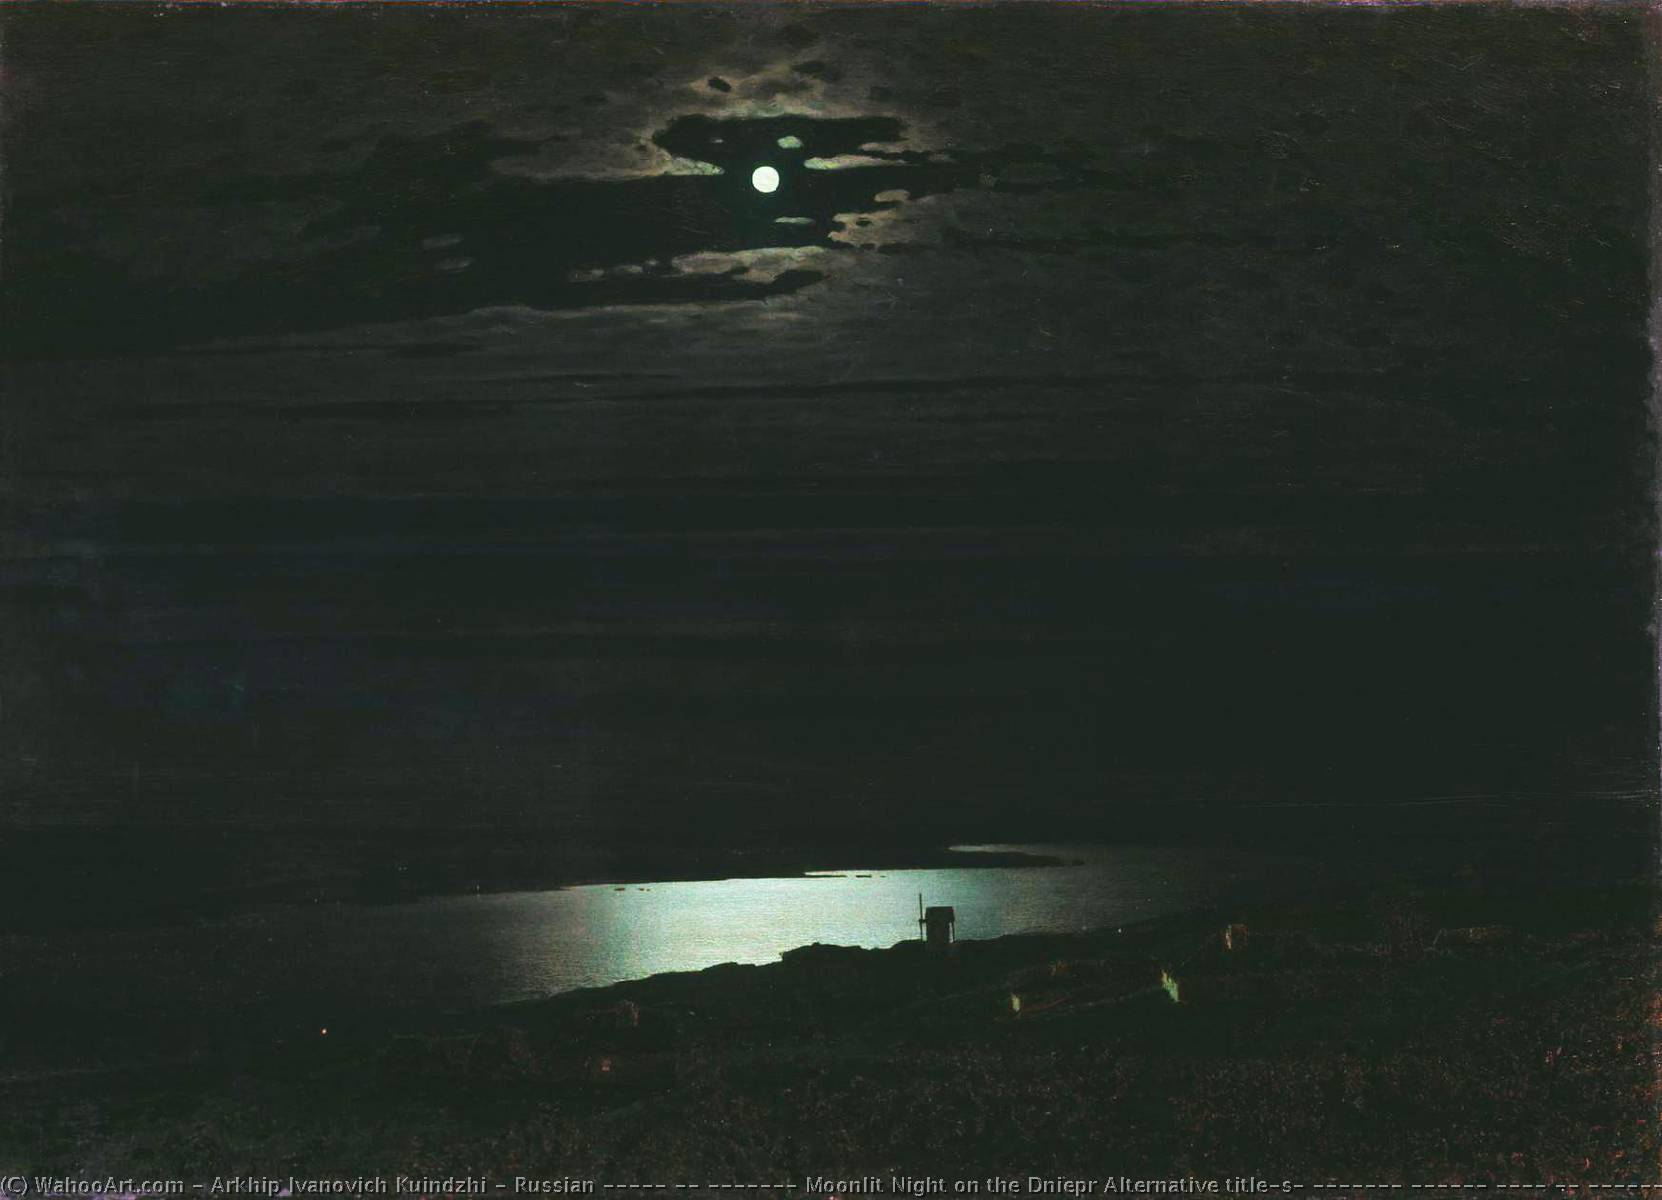 Russian «Ночь на Днепре» Moonlit Night on the Dniepr Alternative title(s) Русский Лунная ночь на Днепре, 1882 by Arkhip Ivanovich Kuinji (1842-1910, Russia) | Museum Quality Copies Arkhip Ivanovich Kuinji | ArtsDot.com